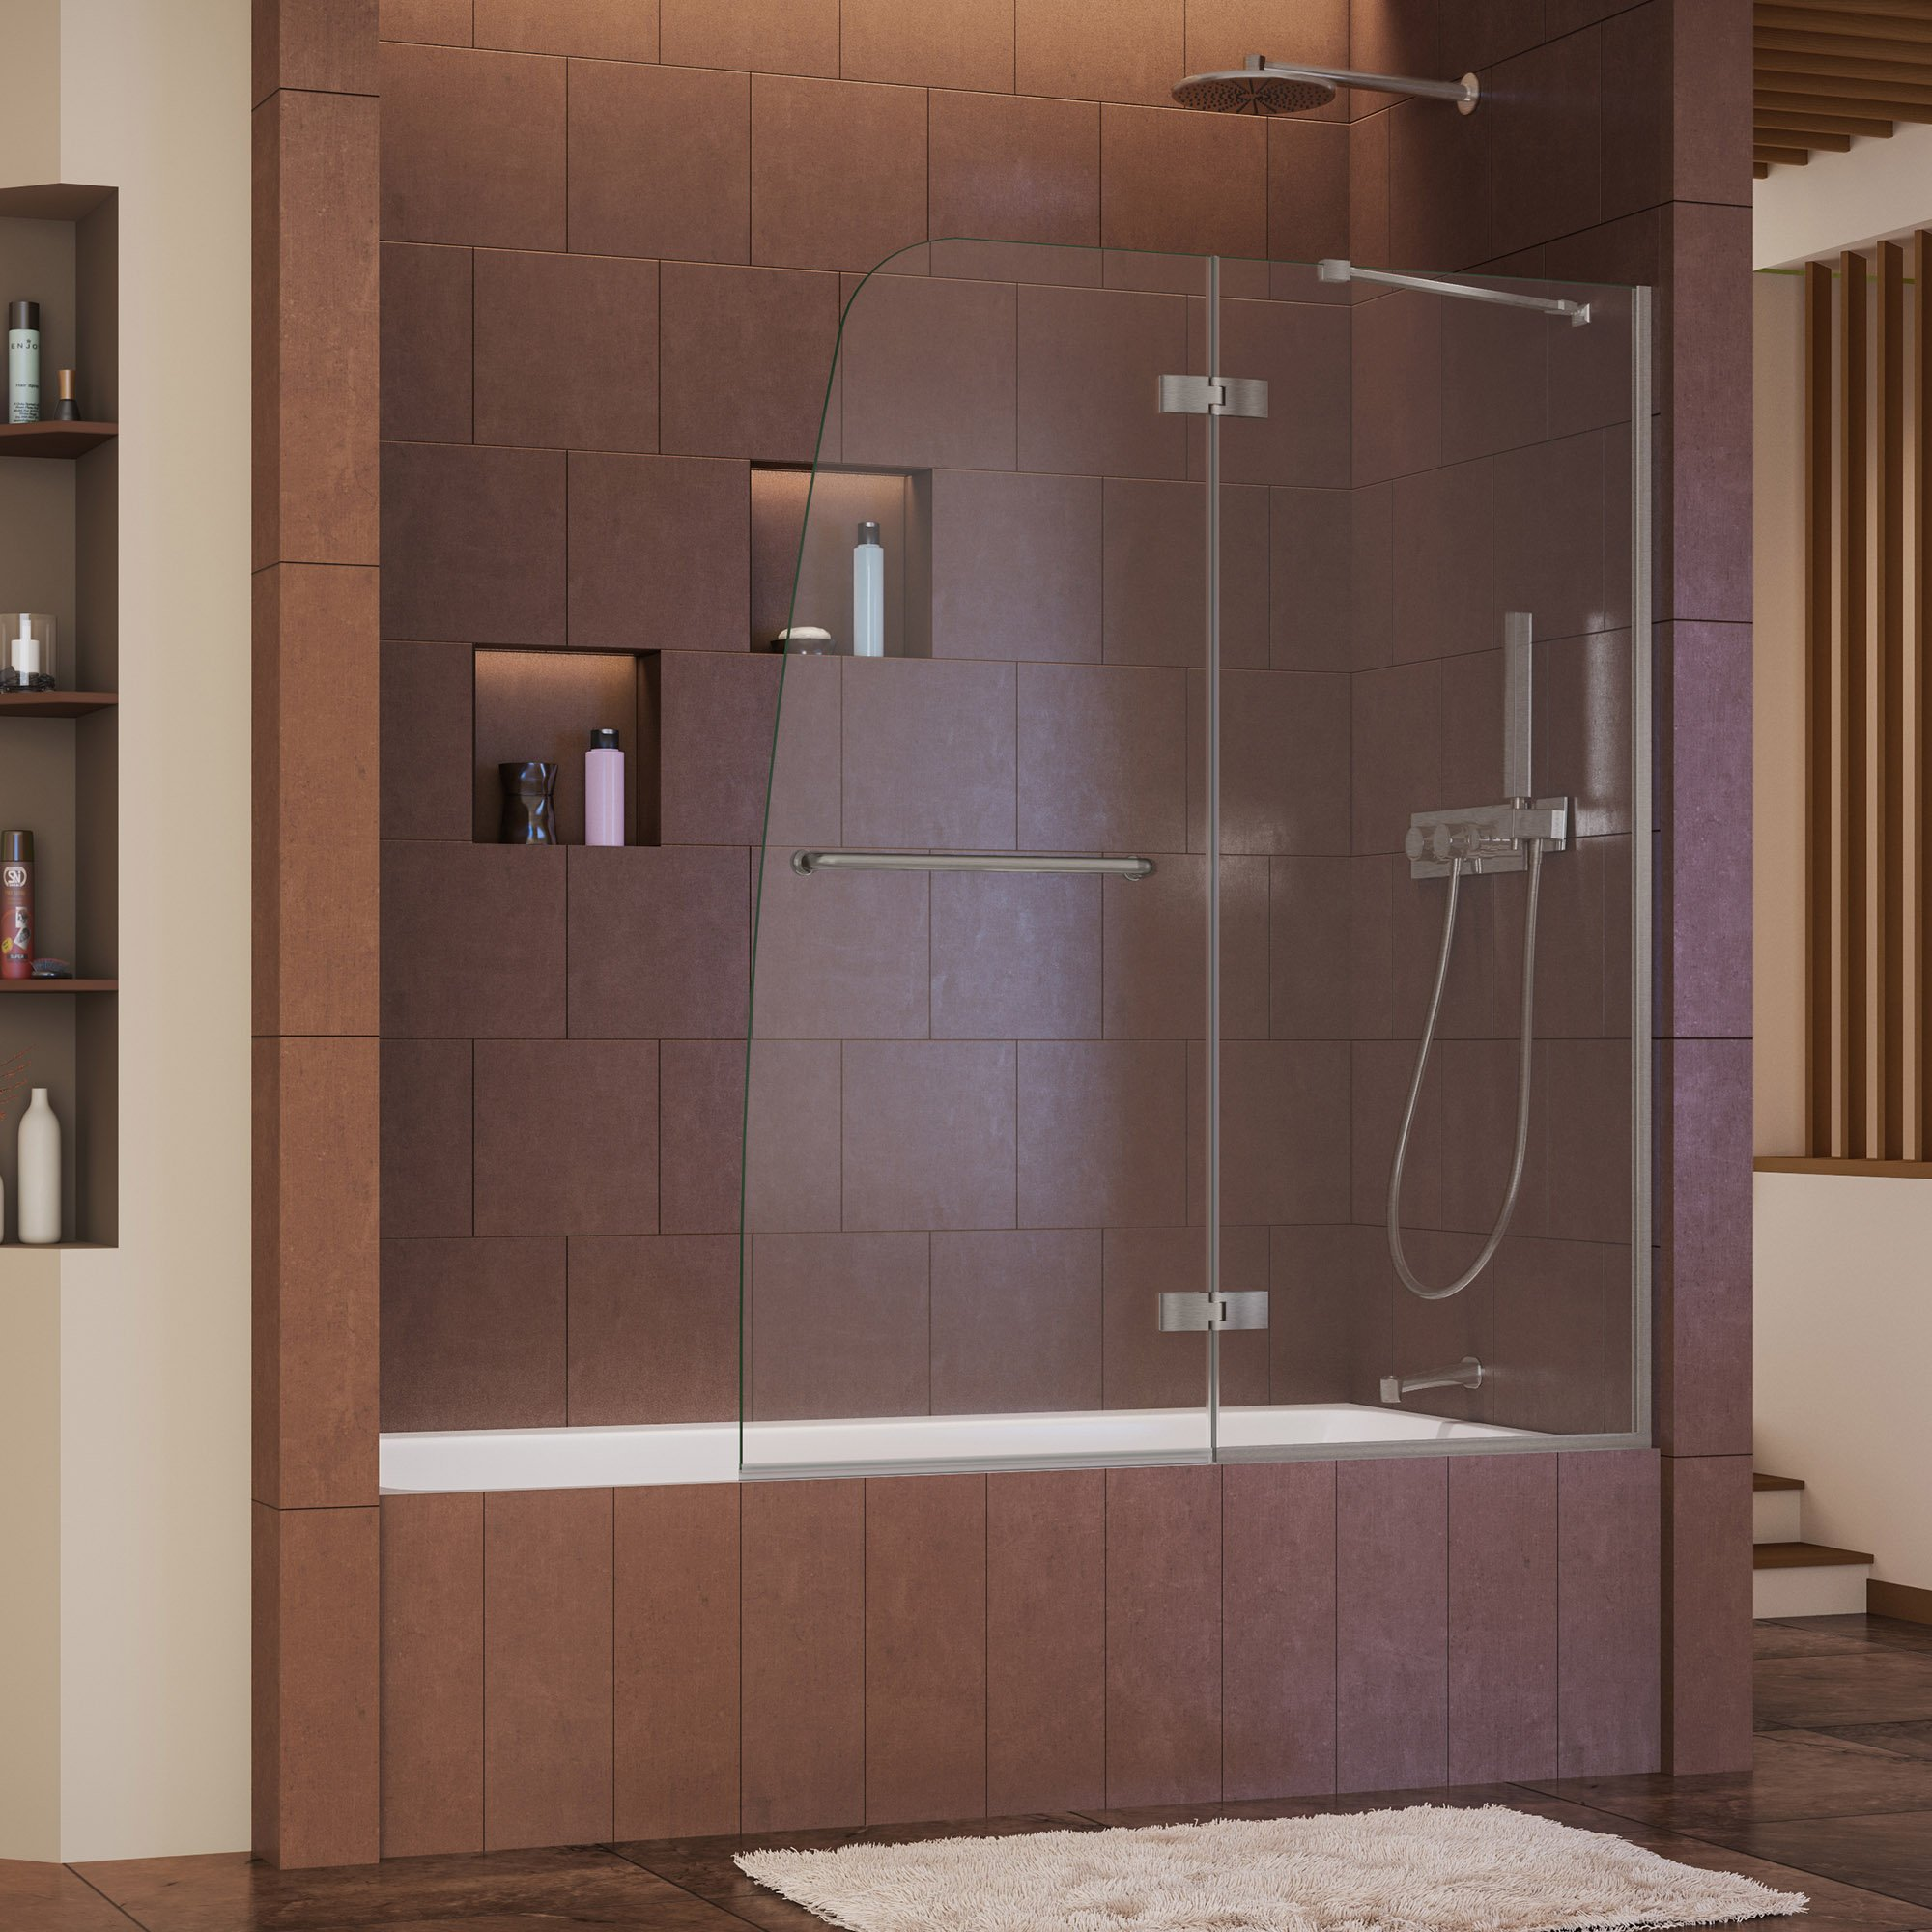 DreamLine Aqua Ultra 48 in. Width, Frameless Hinged Tub Door, 5/16'' Glass, Brushed Nickel Finish